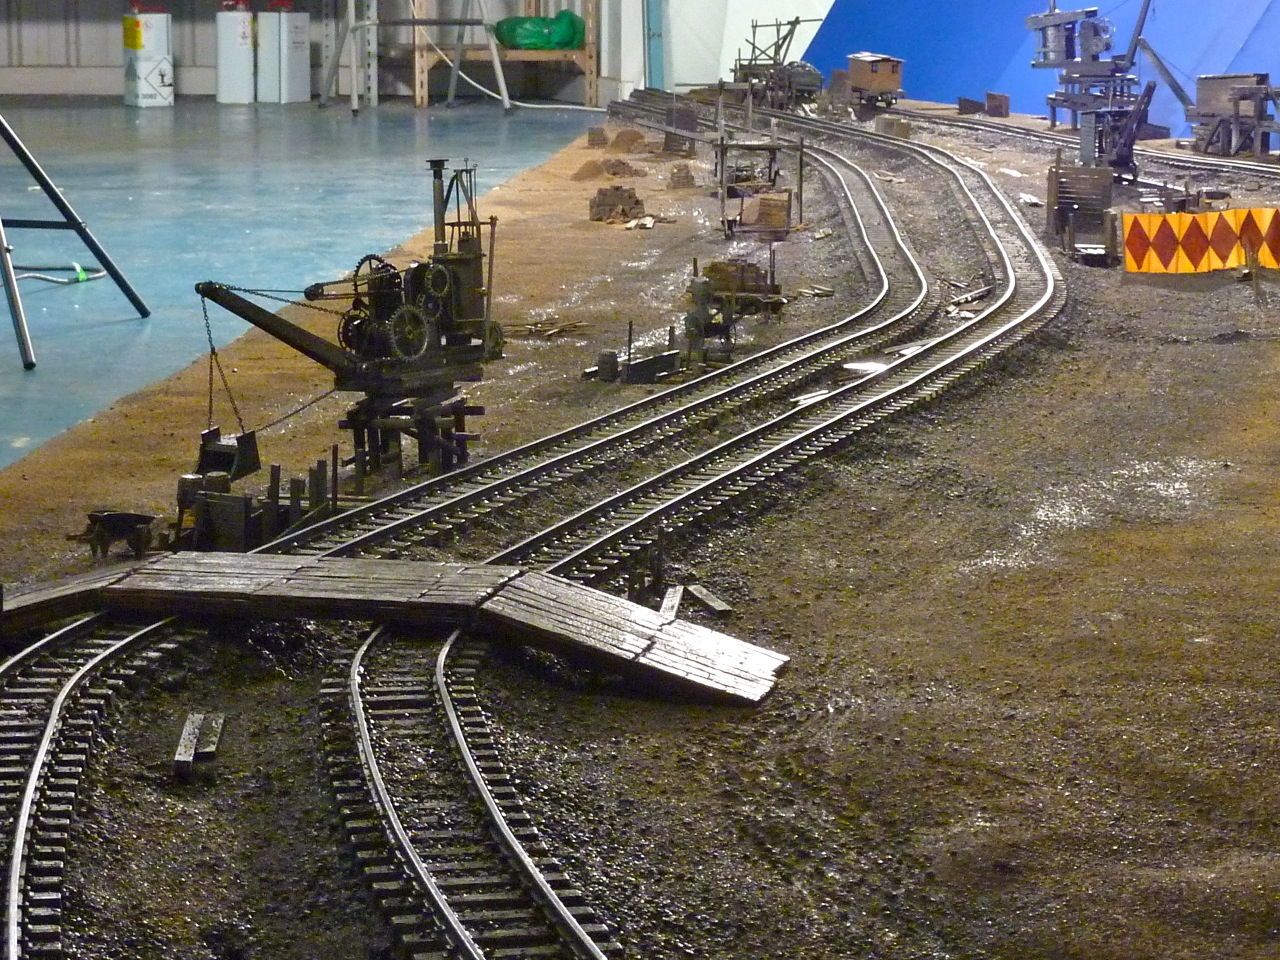 Miniature model making in our studio